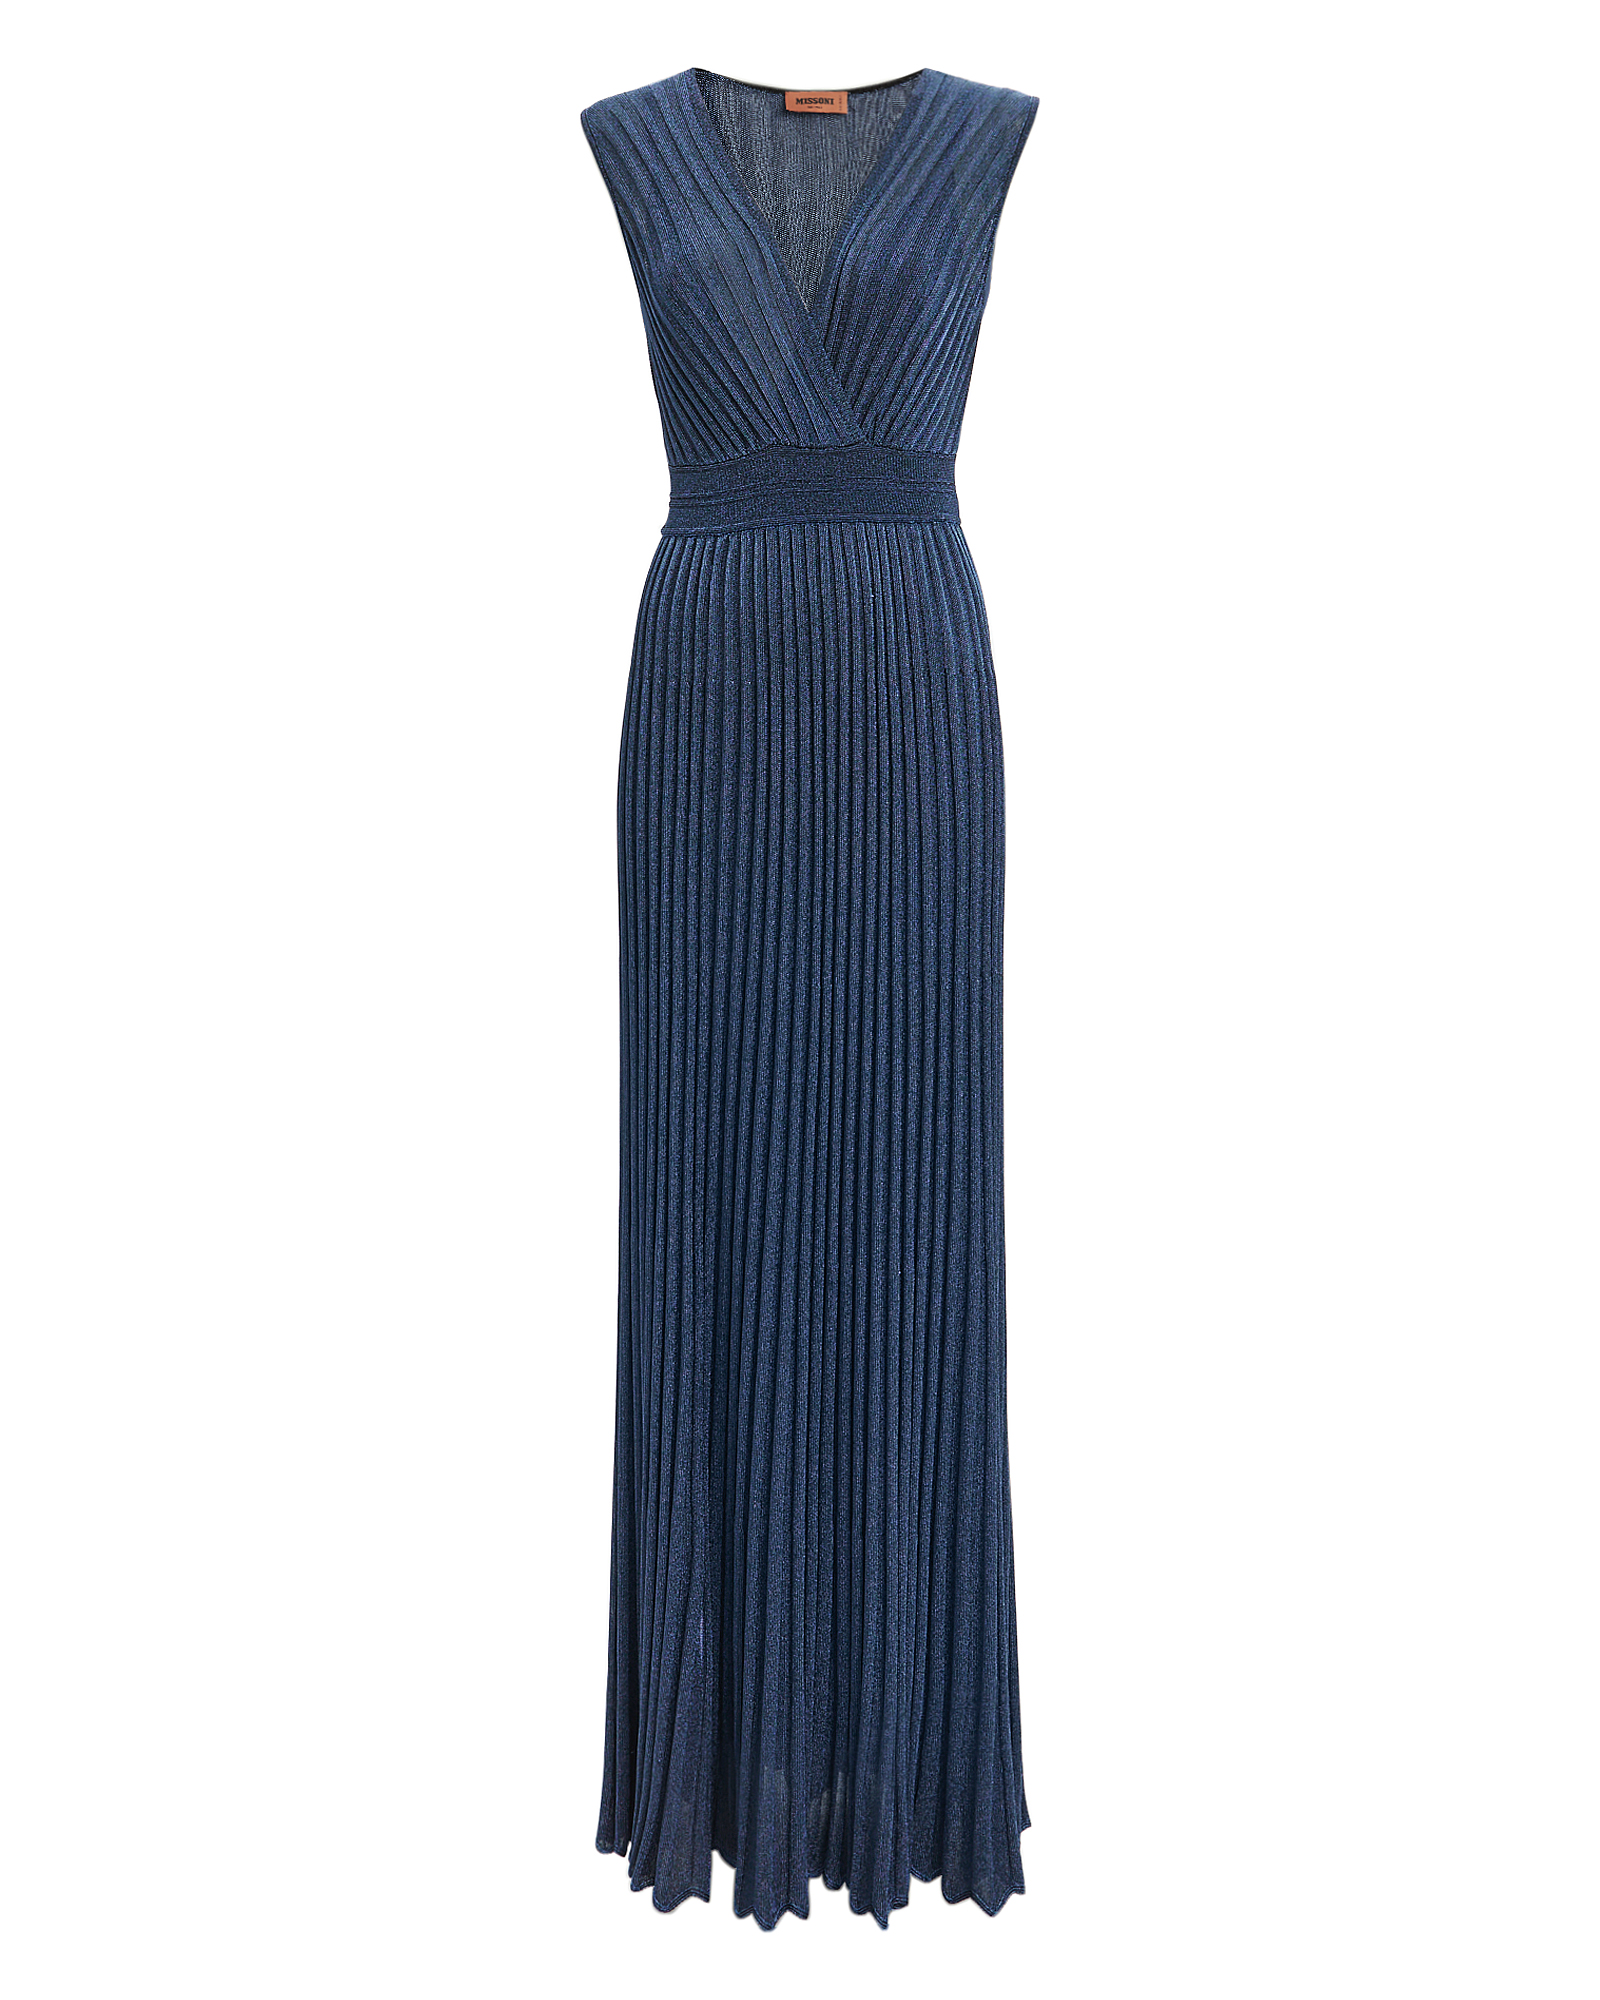 Sleeveless Metallic Crochet-Knit Maxi Dress in Blue